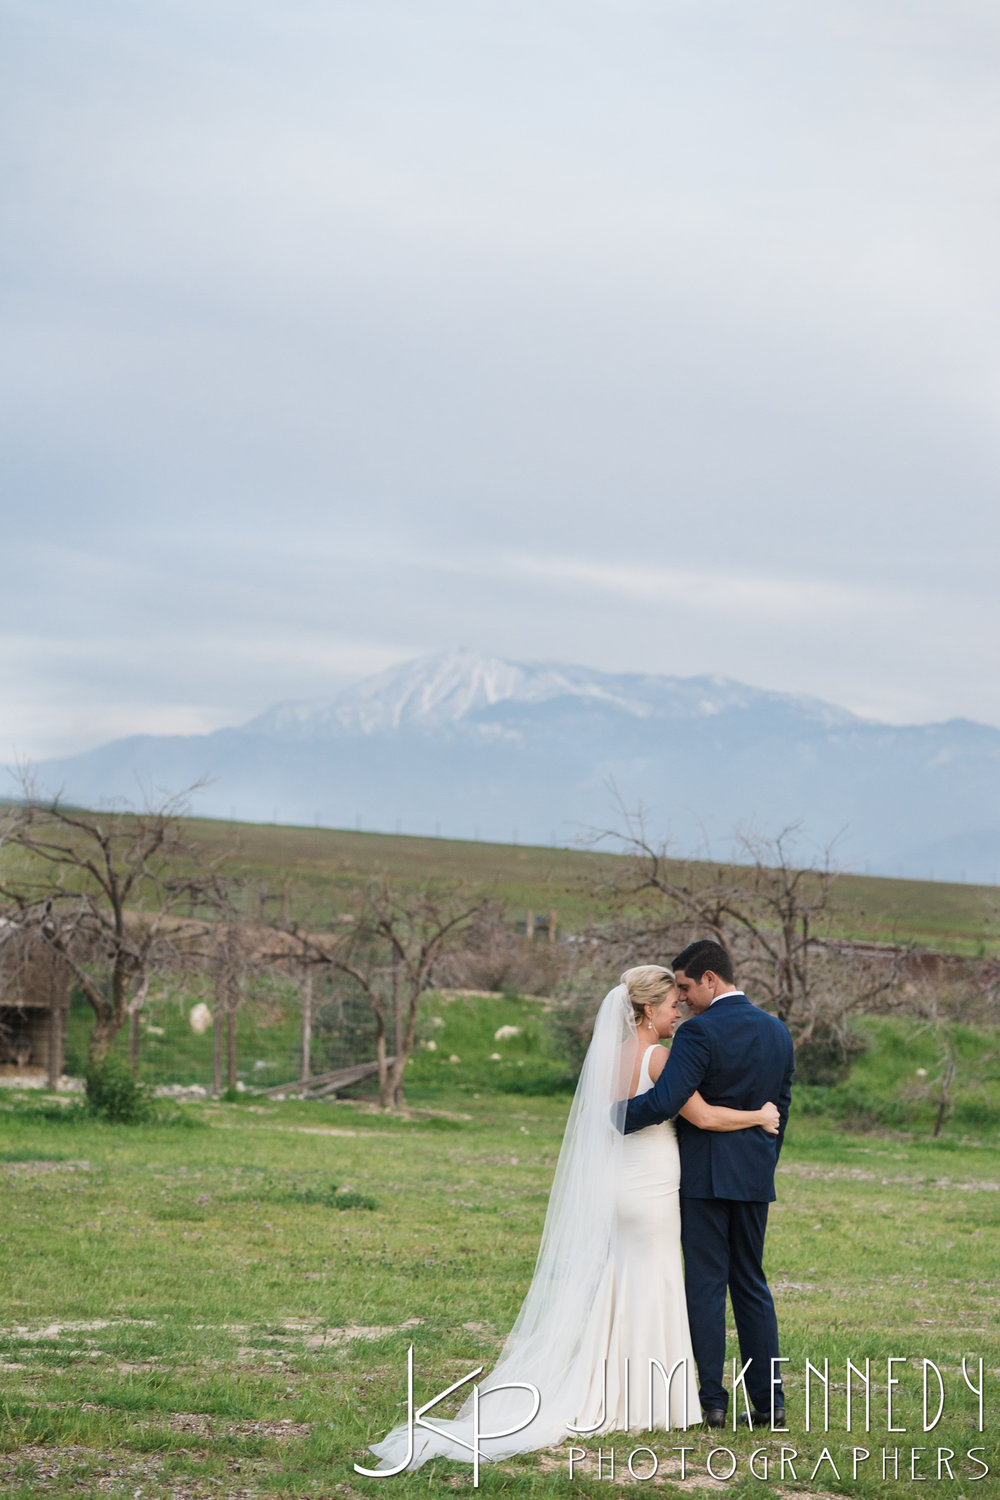 jim_kennedy_photographers_highland_springs_wedding_caitlyn_0144.jpg